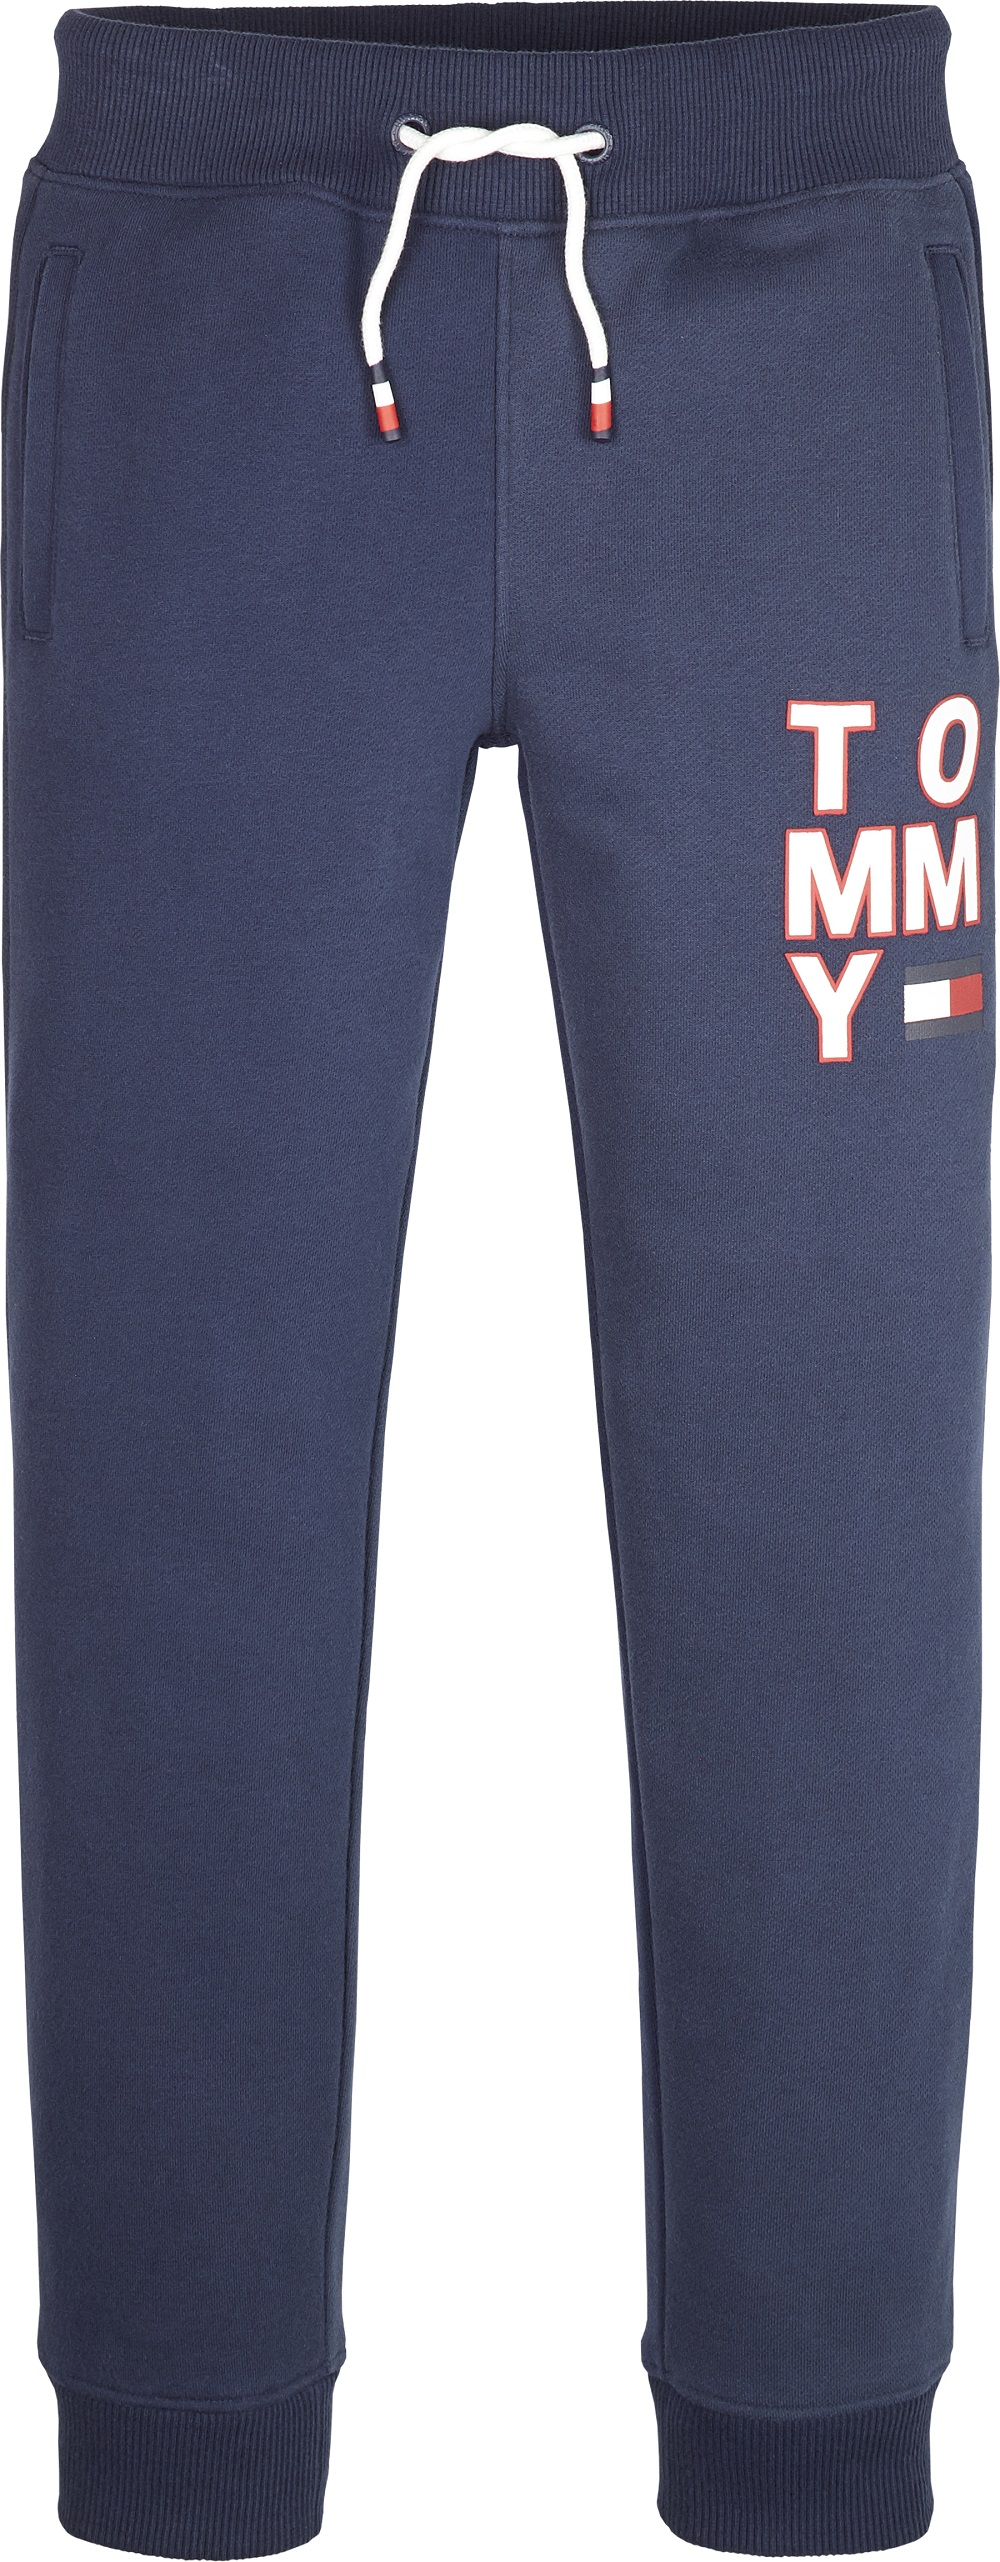 Tommy Hilfiger Childrenswear Collegehousut, Graphic Sweatpants Tummansininen